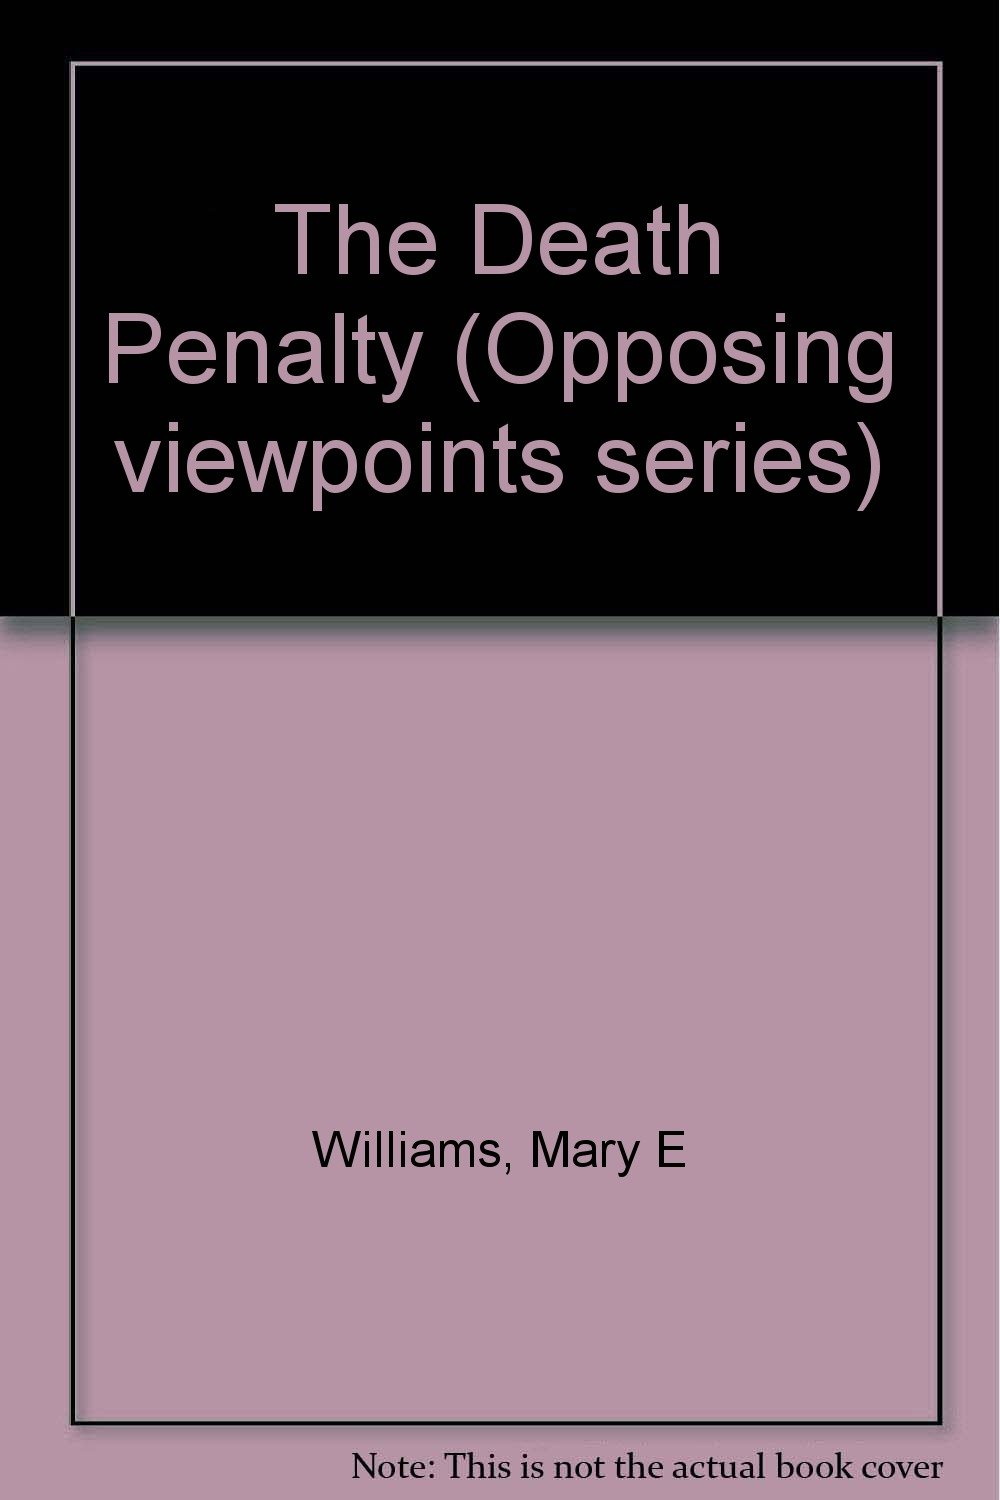 opposing viewpoints series the death penalty hardcover edition opposing viewpoints series the death penalty hardcover edition mary e williams 9780737707922 com books